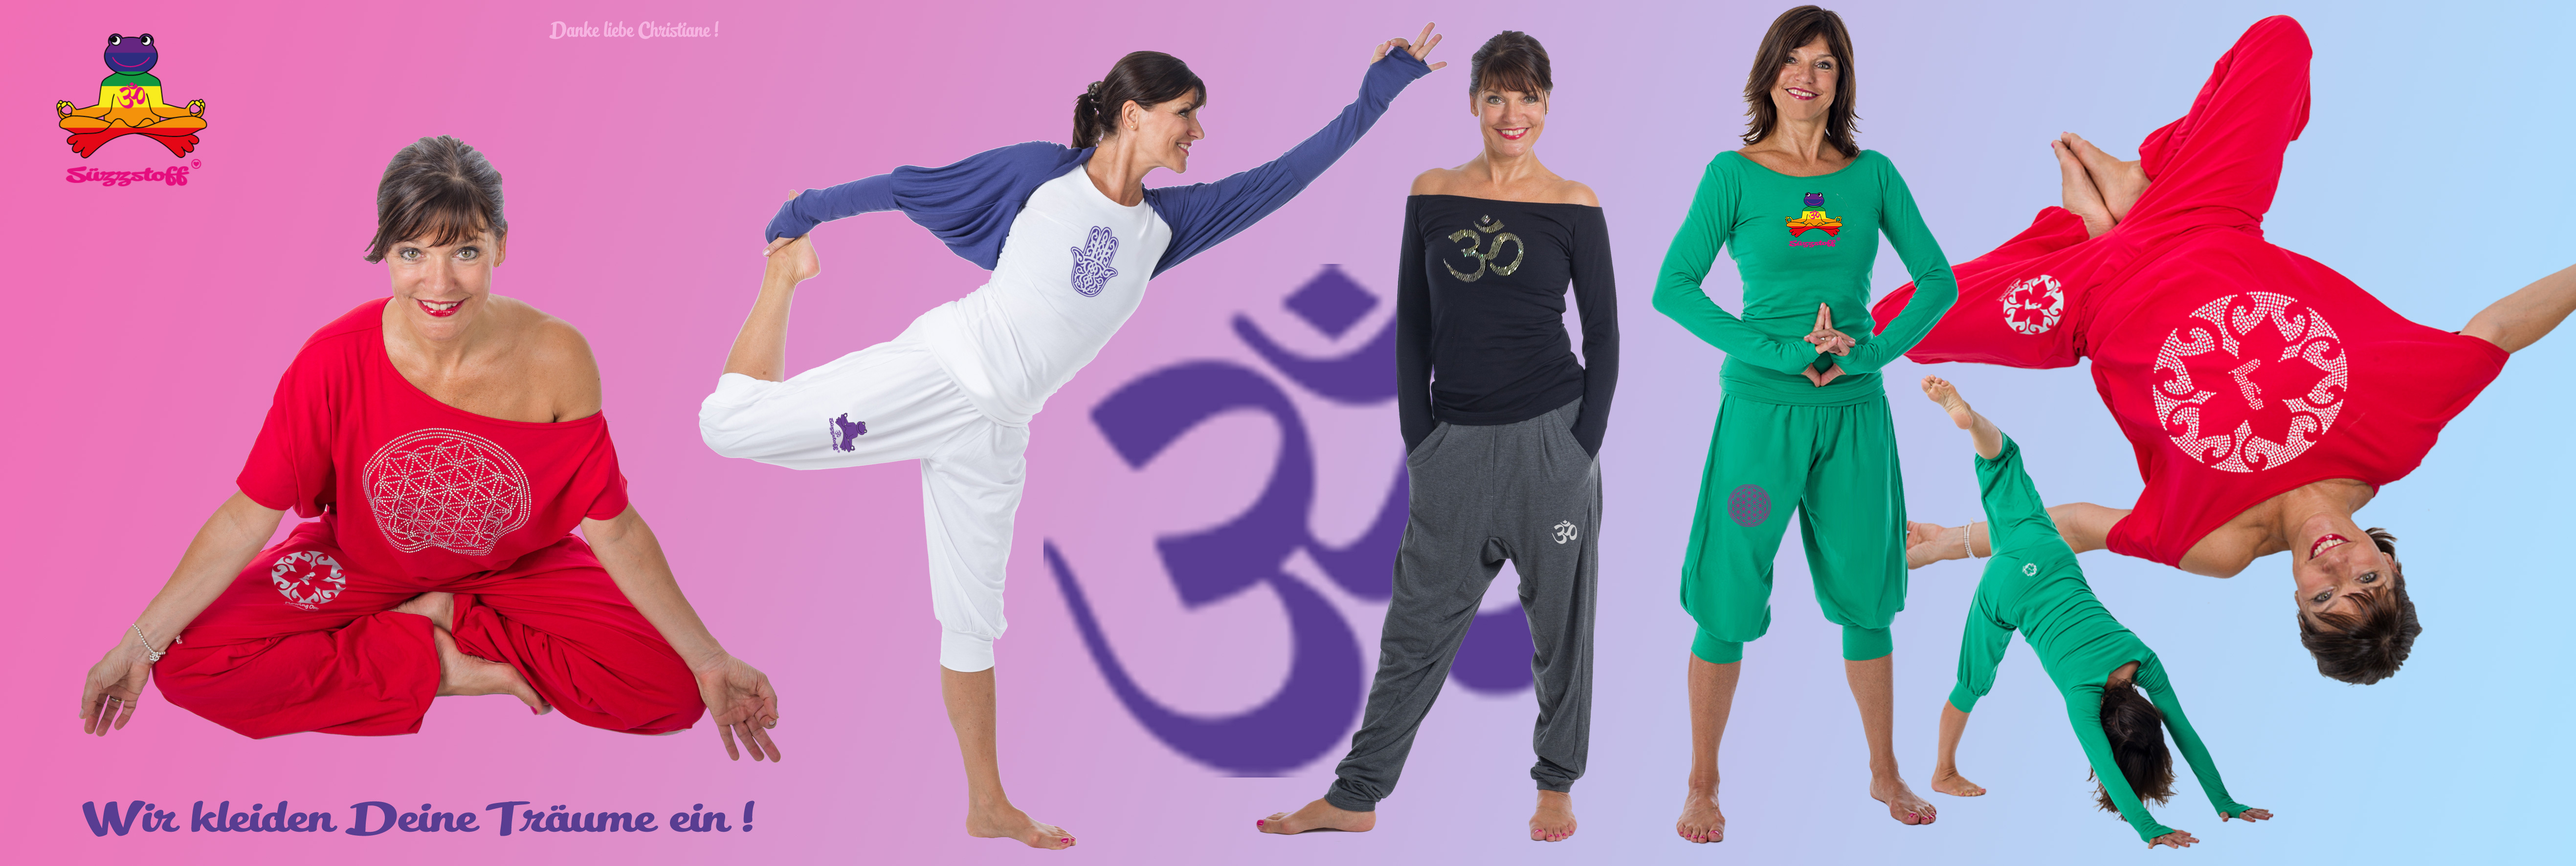 Yogamode-yoga-fashion-bio-oeko-healthy-support-spiritual-clothing